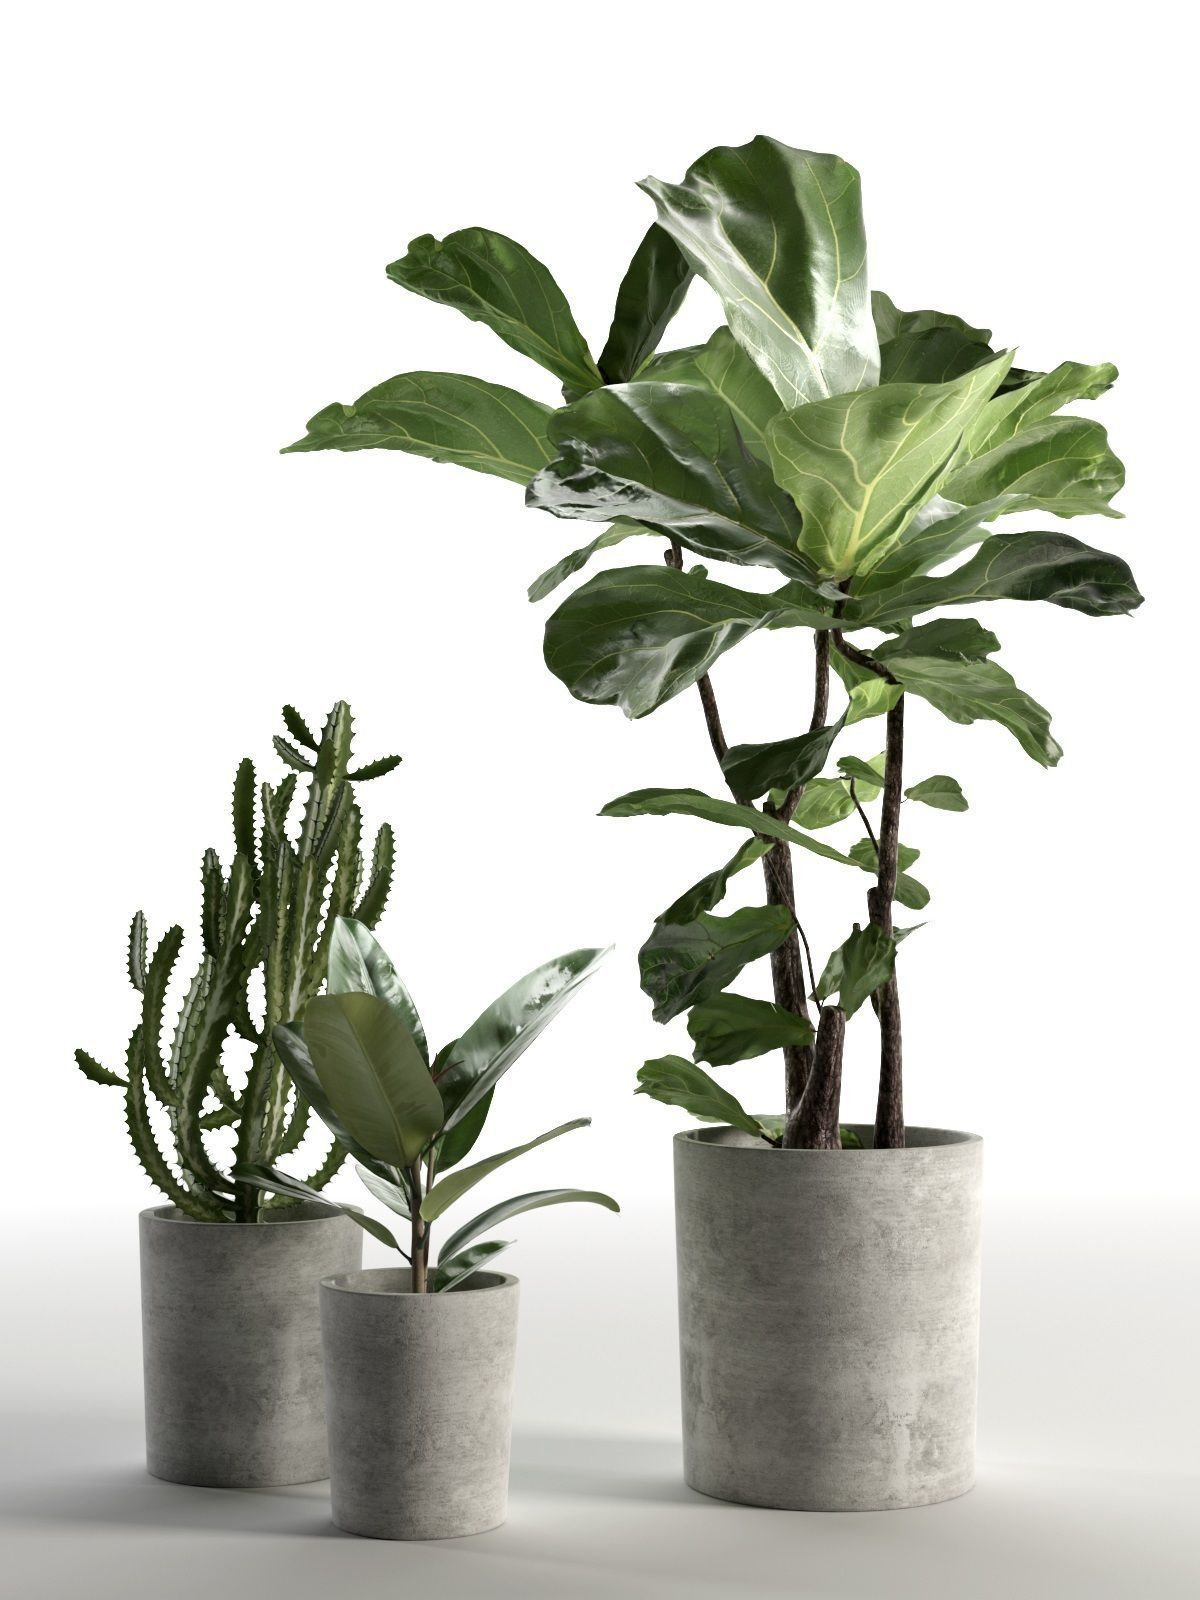 Cactus and Ficus in Pots